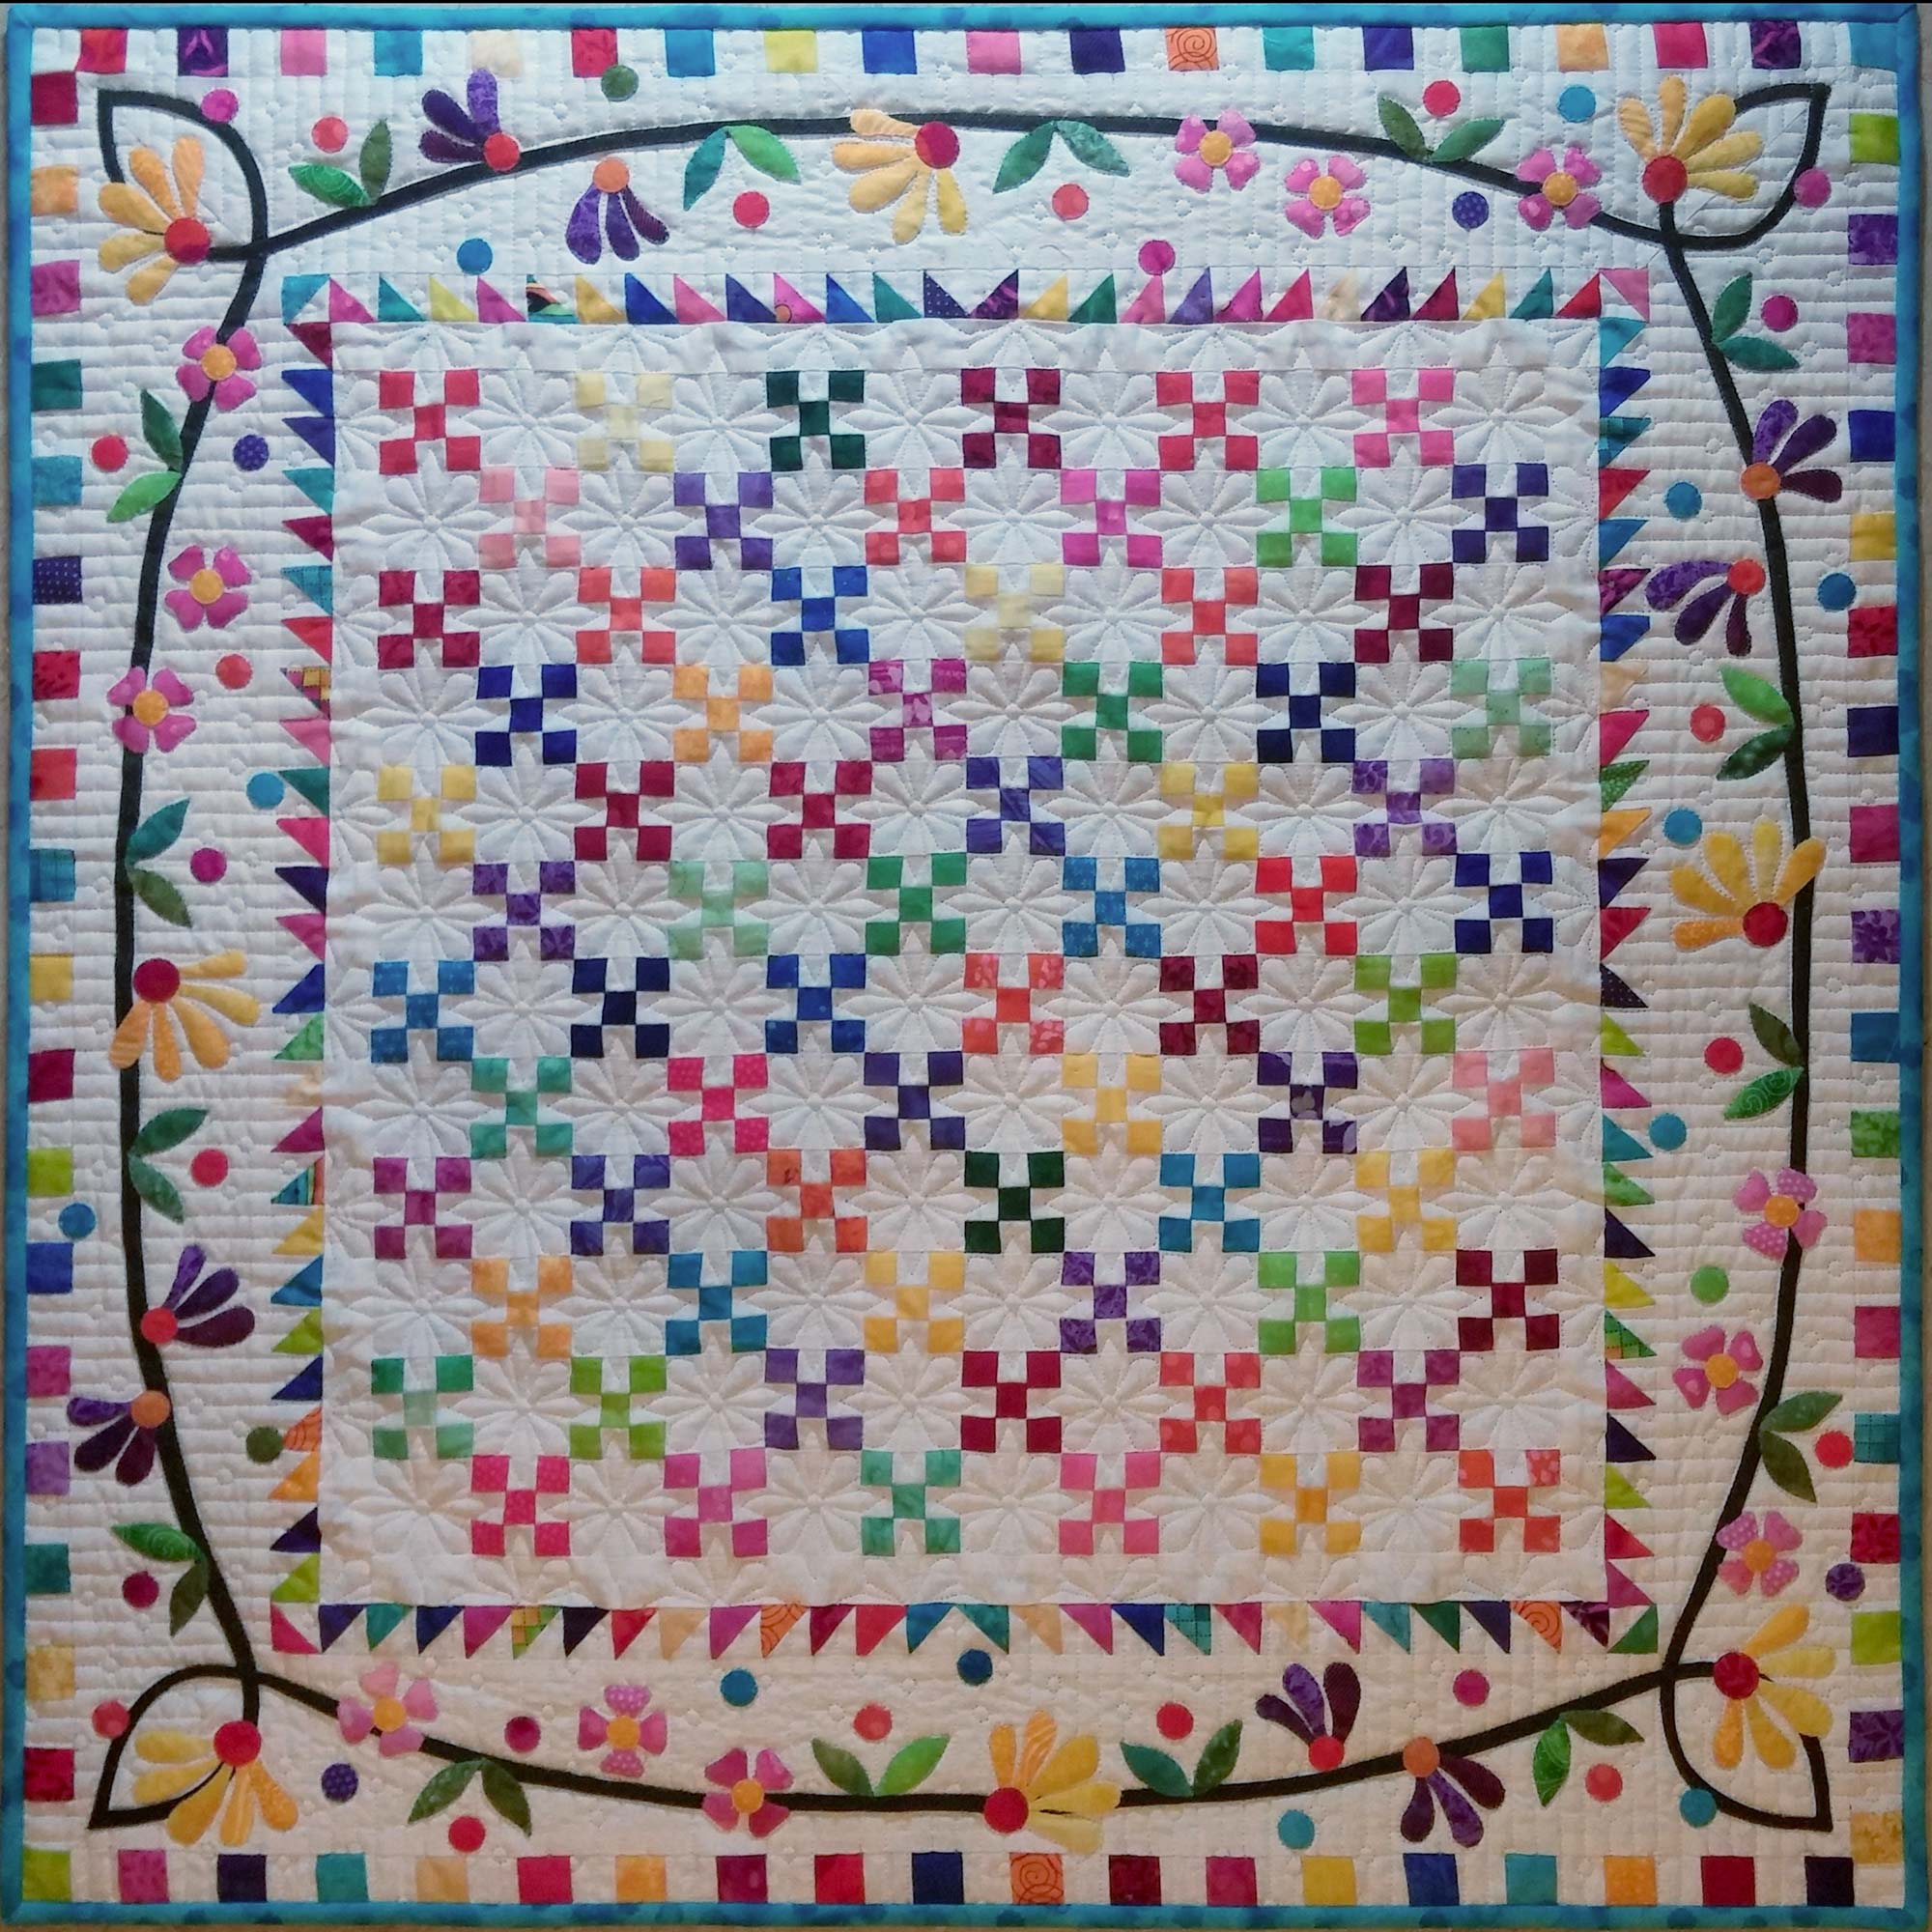 A special quilt in the silent auction, just in case you don't win the big one.